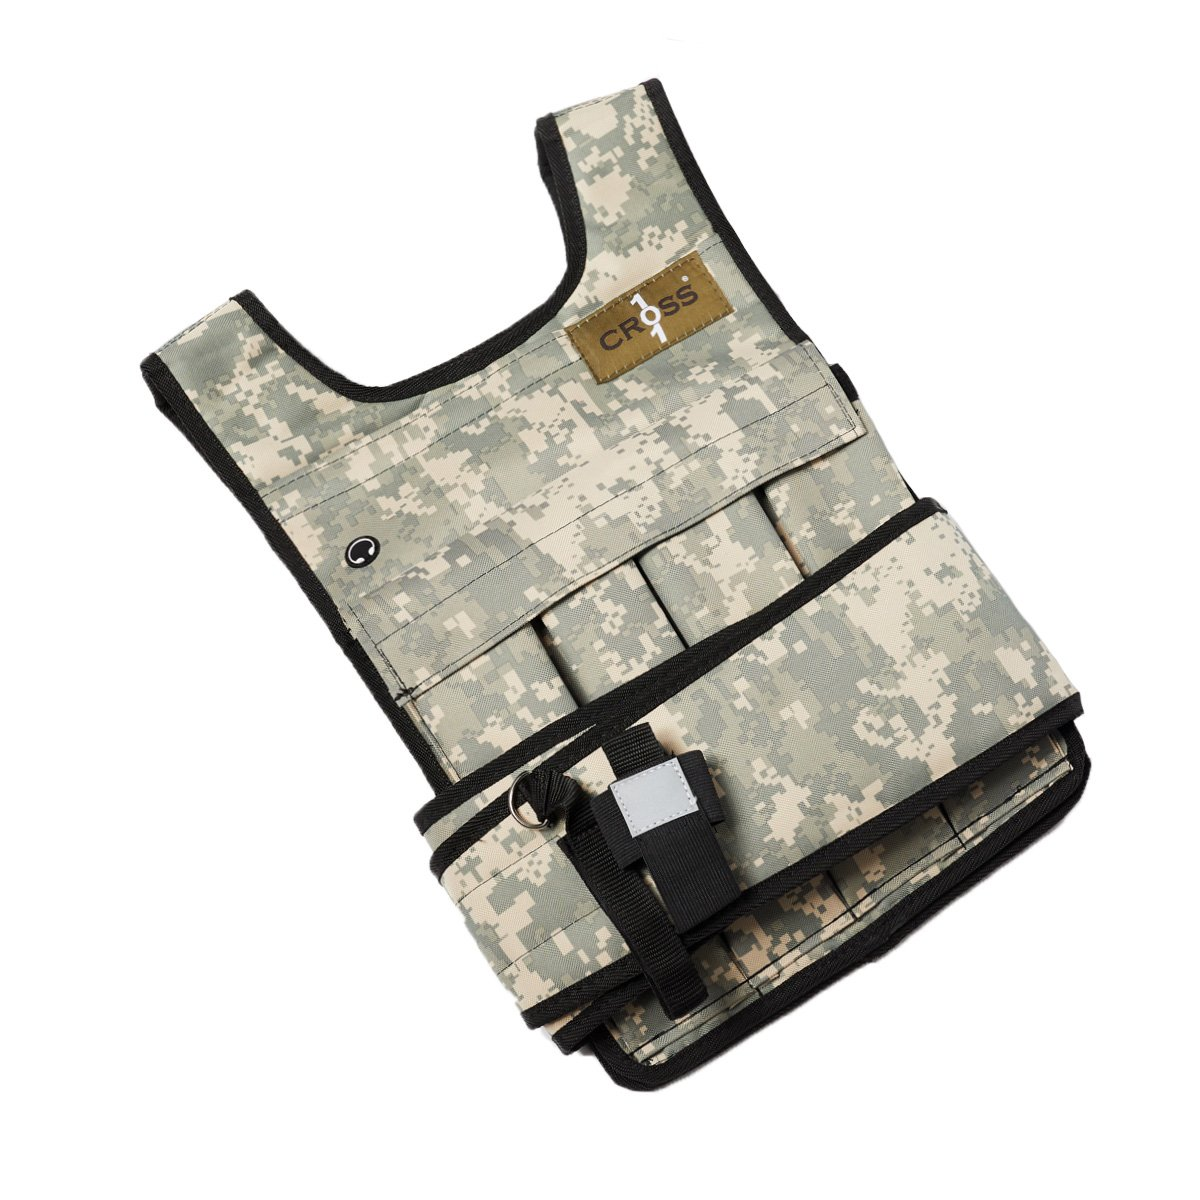 Cross101 Adjustable Camouflage Weighted Vest without Shoulder Pads, 20 lb c10120